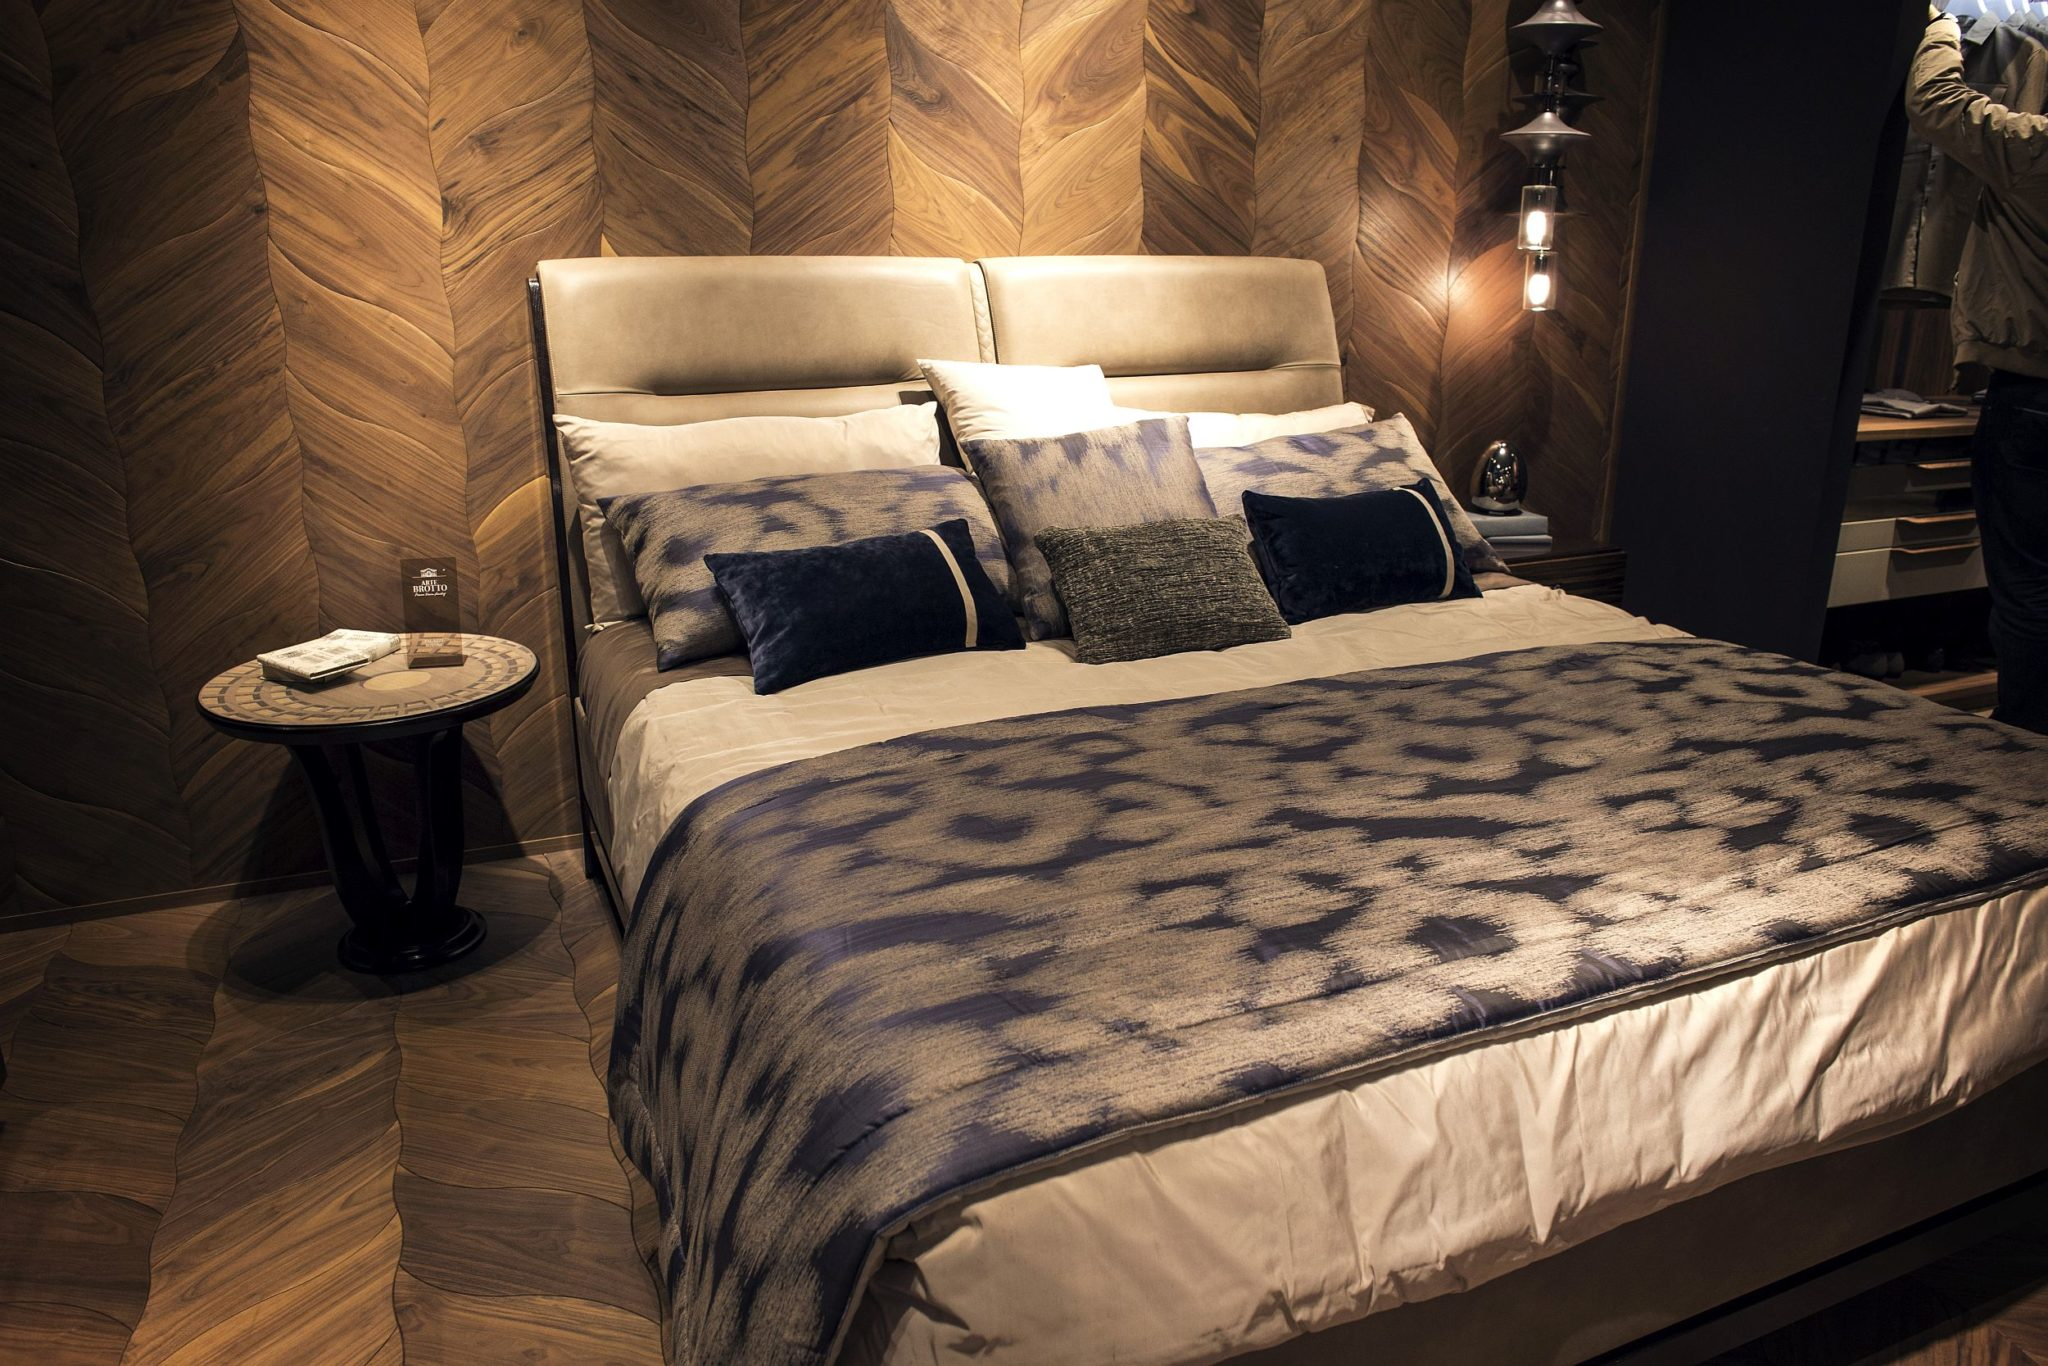 Creating-luxury-with-modern-aesthetics-in-the-bedroom